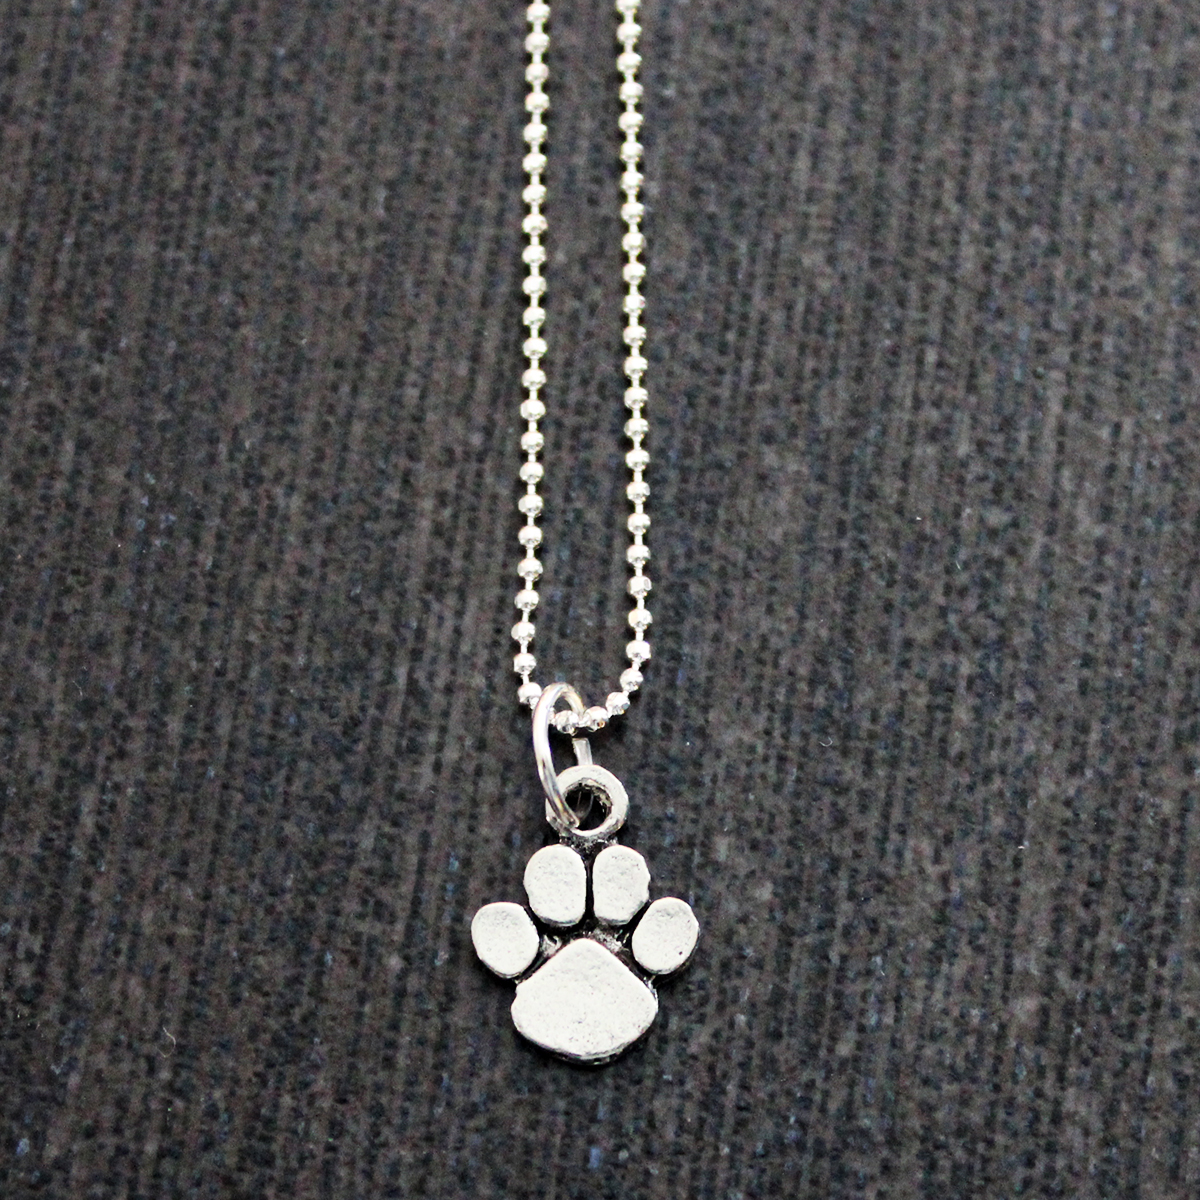 paw necklace made handmade custommade jewelry gigi by custom com jewelrybygigi print